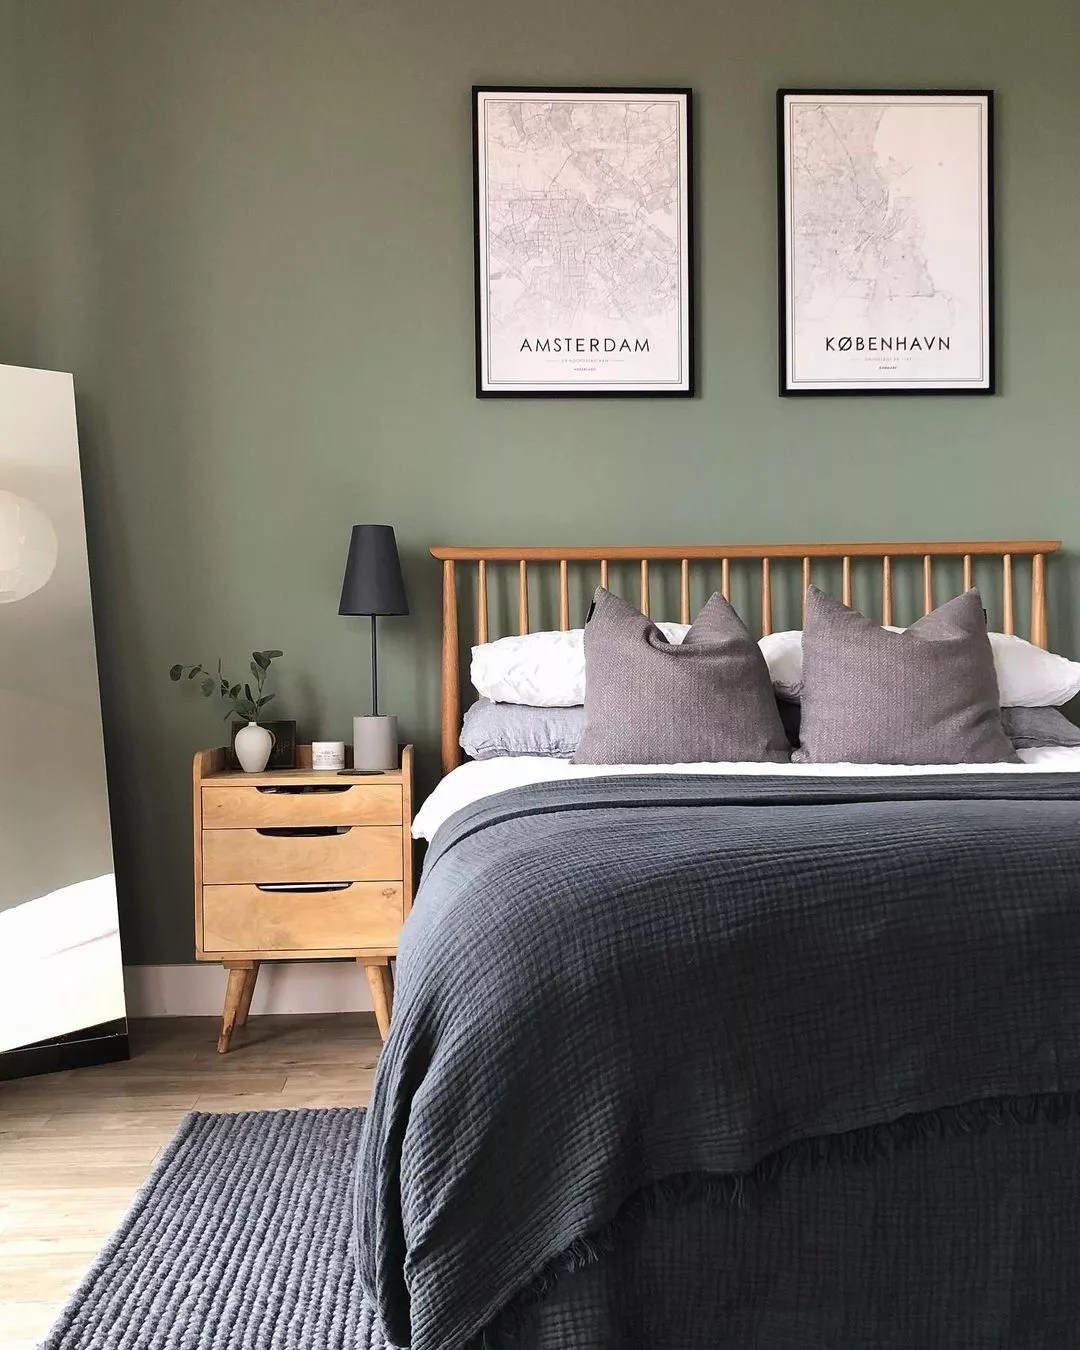 Bed against a sage green wall. Photo by Instagram user @natlimbrey.